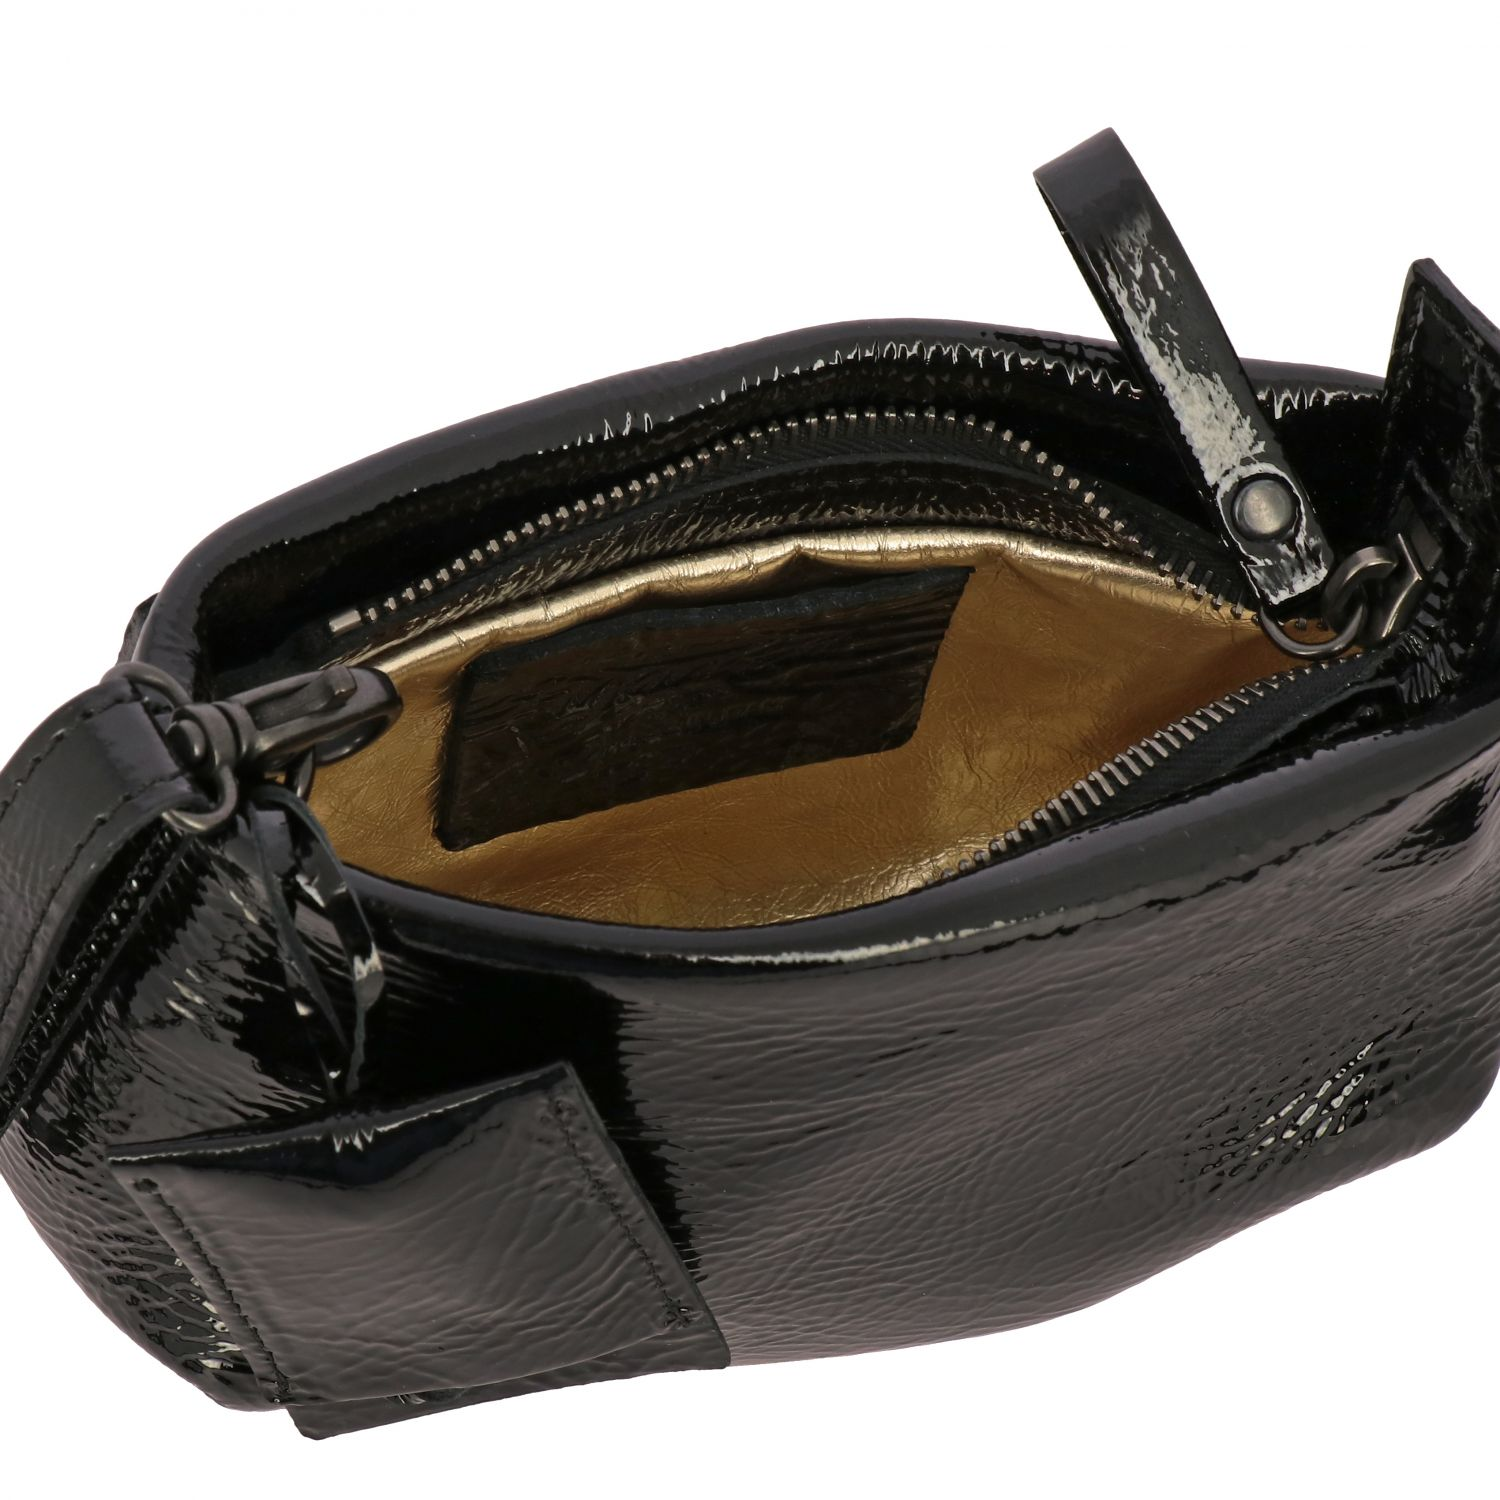 Marsell Fantasmino shoulder bag in patent leather black 5